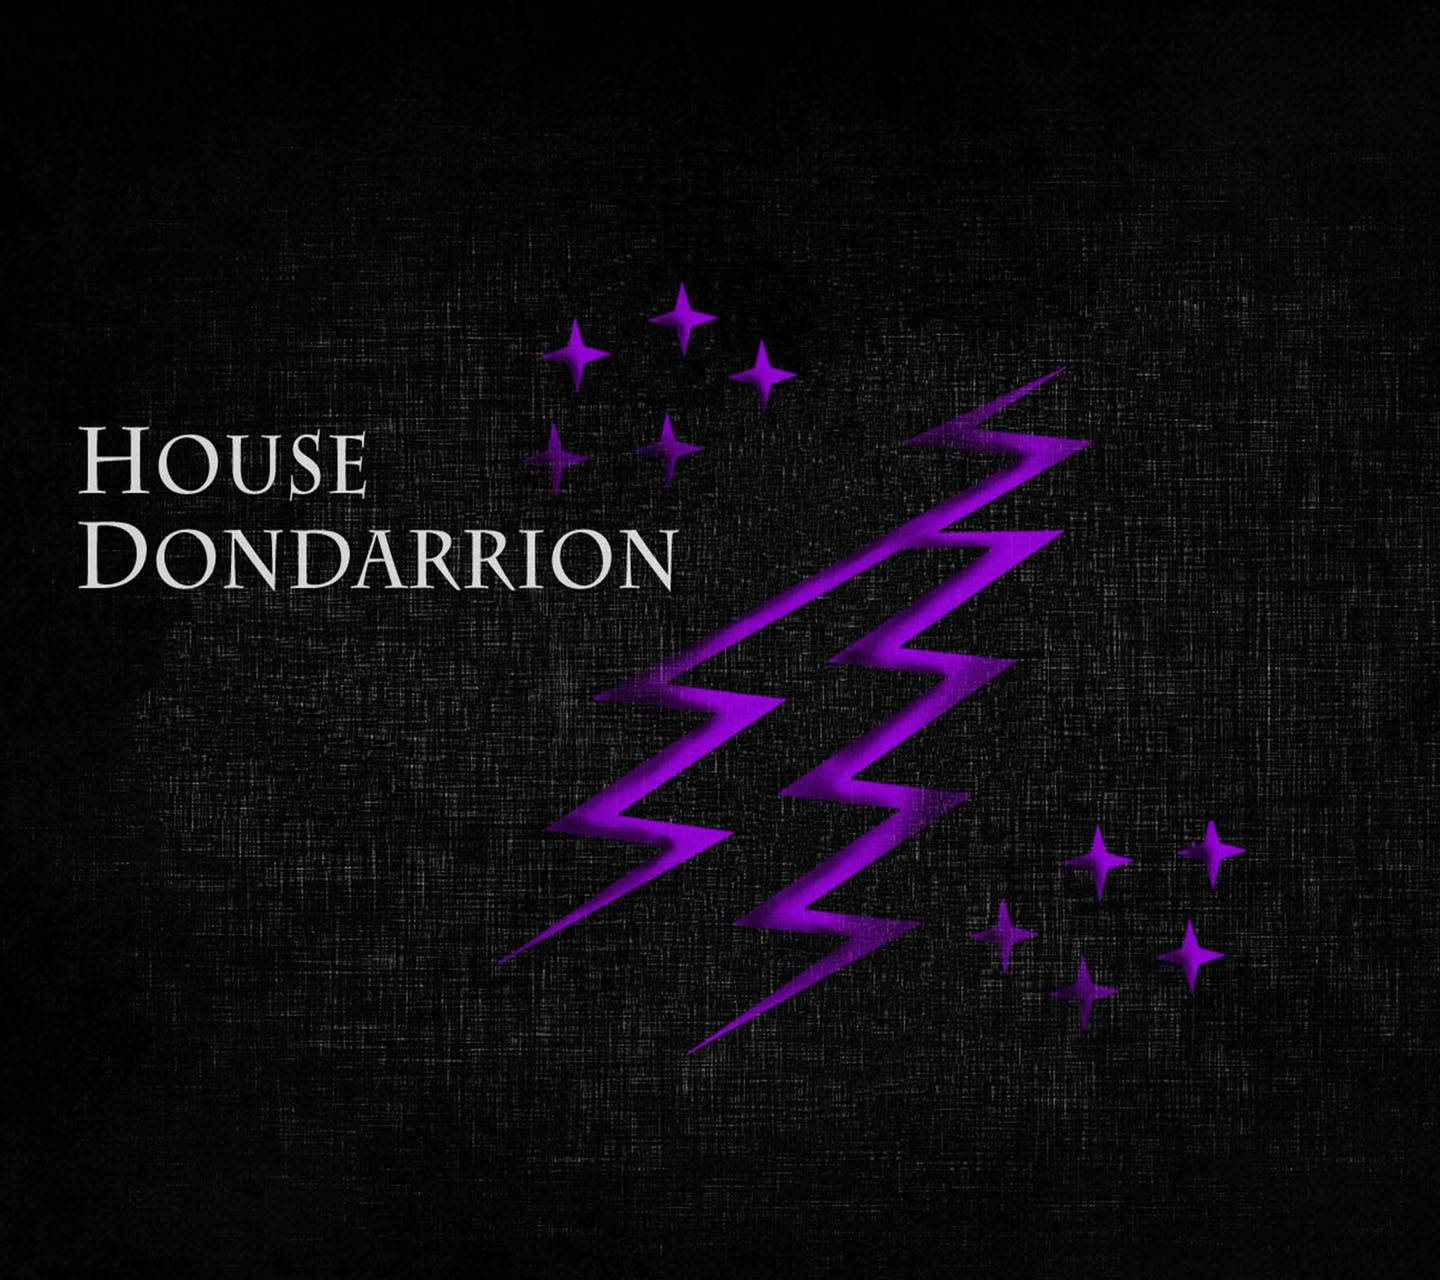 Dondarrion